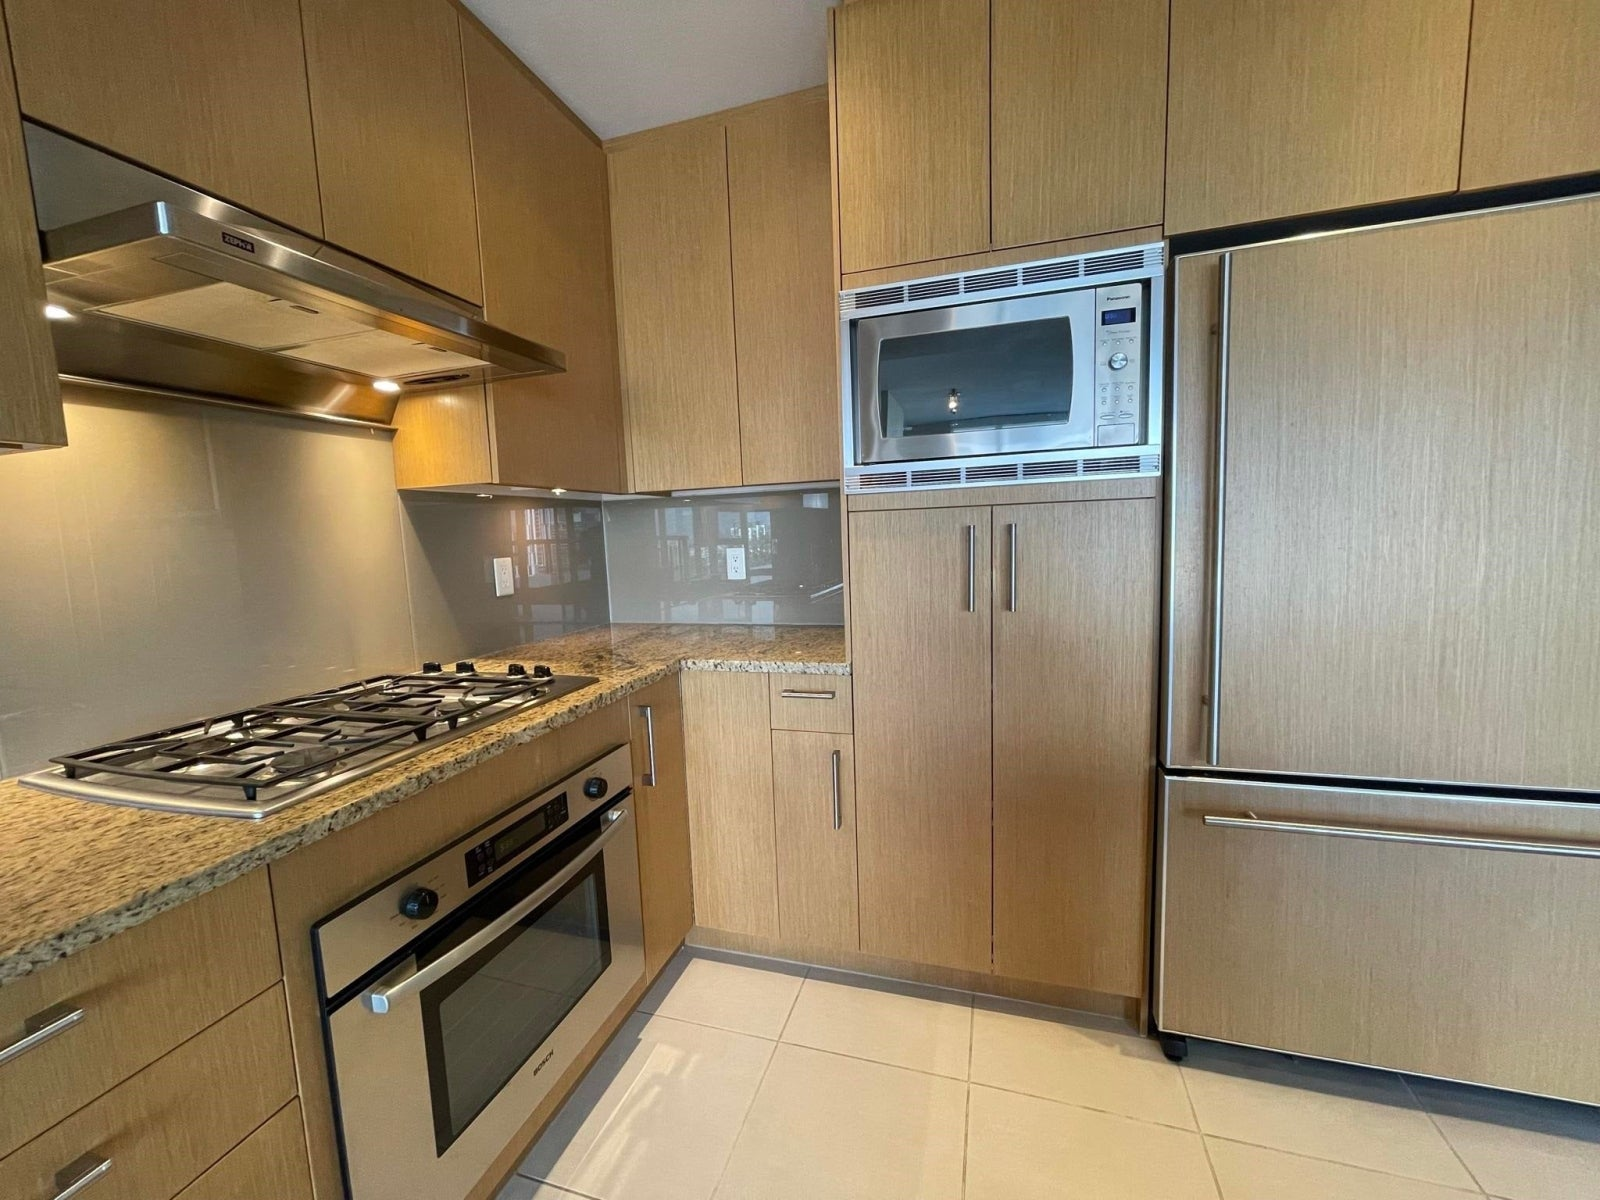 803 1333 W 11TH AVENUE - Fairview VW Apartment/Condo for sale, 2 Bedrooms (R2616288) #12